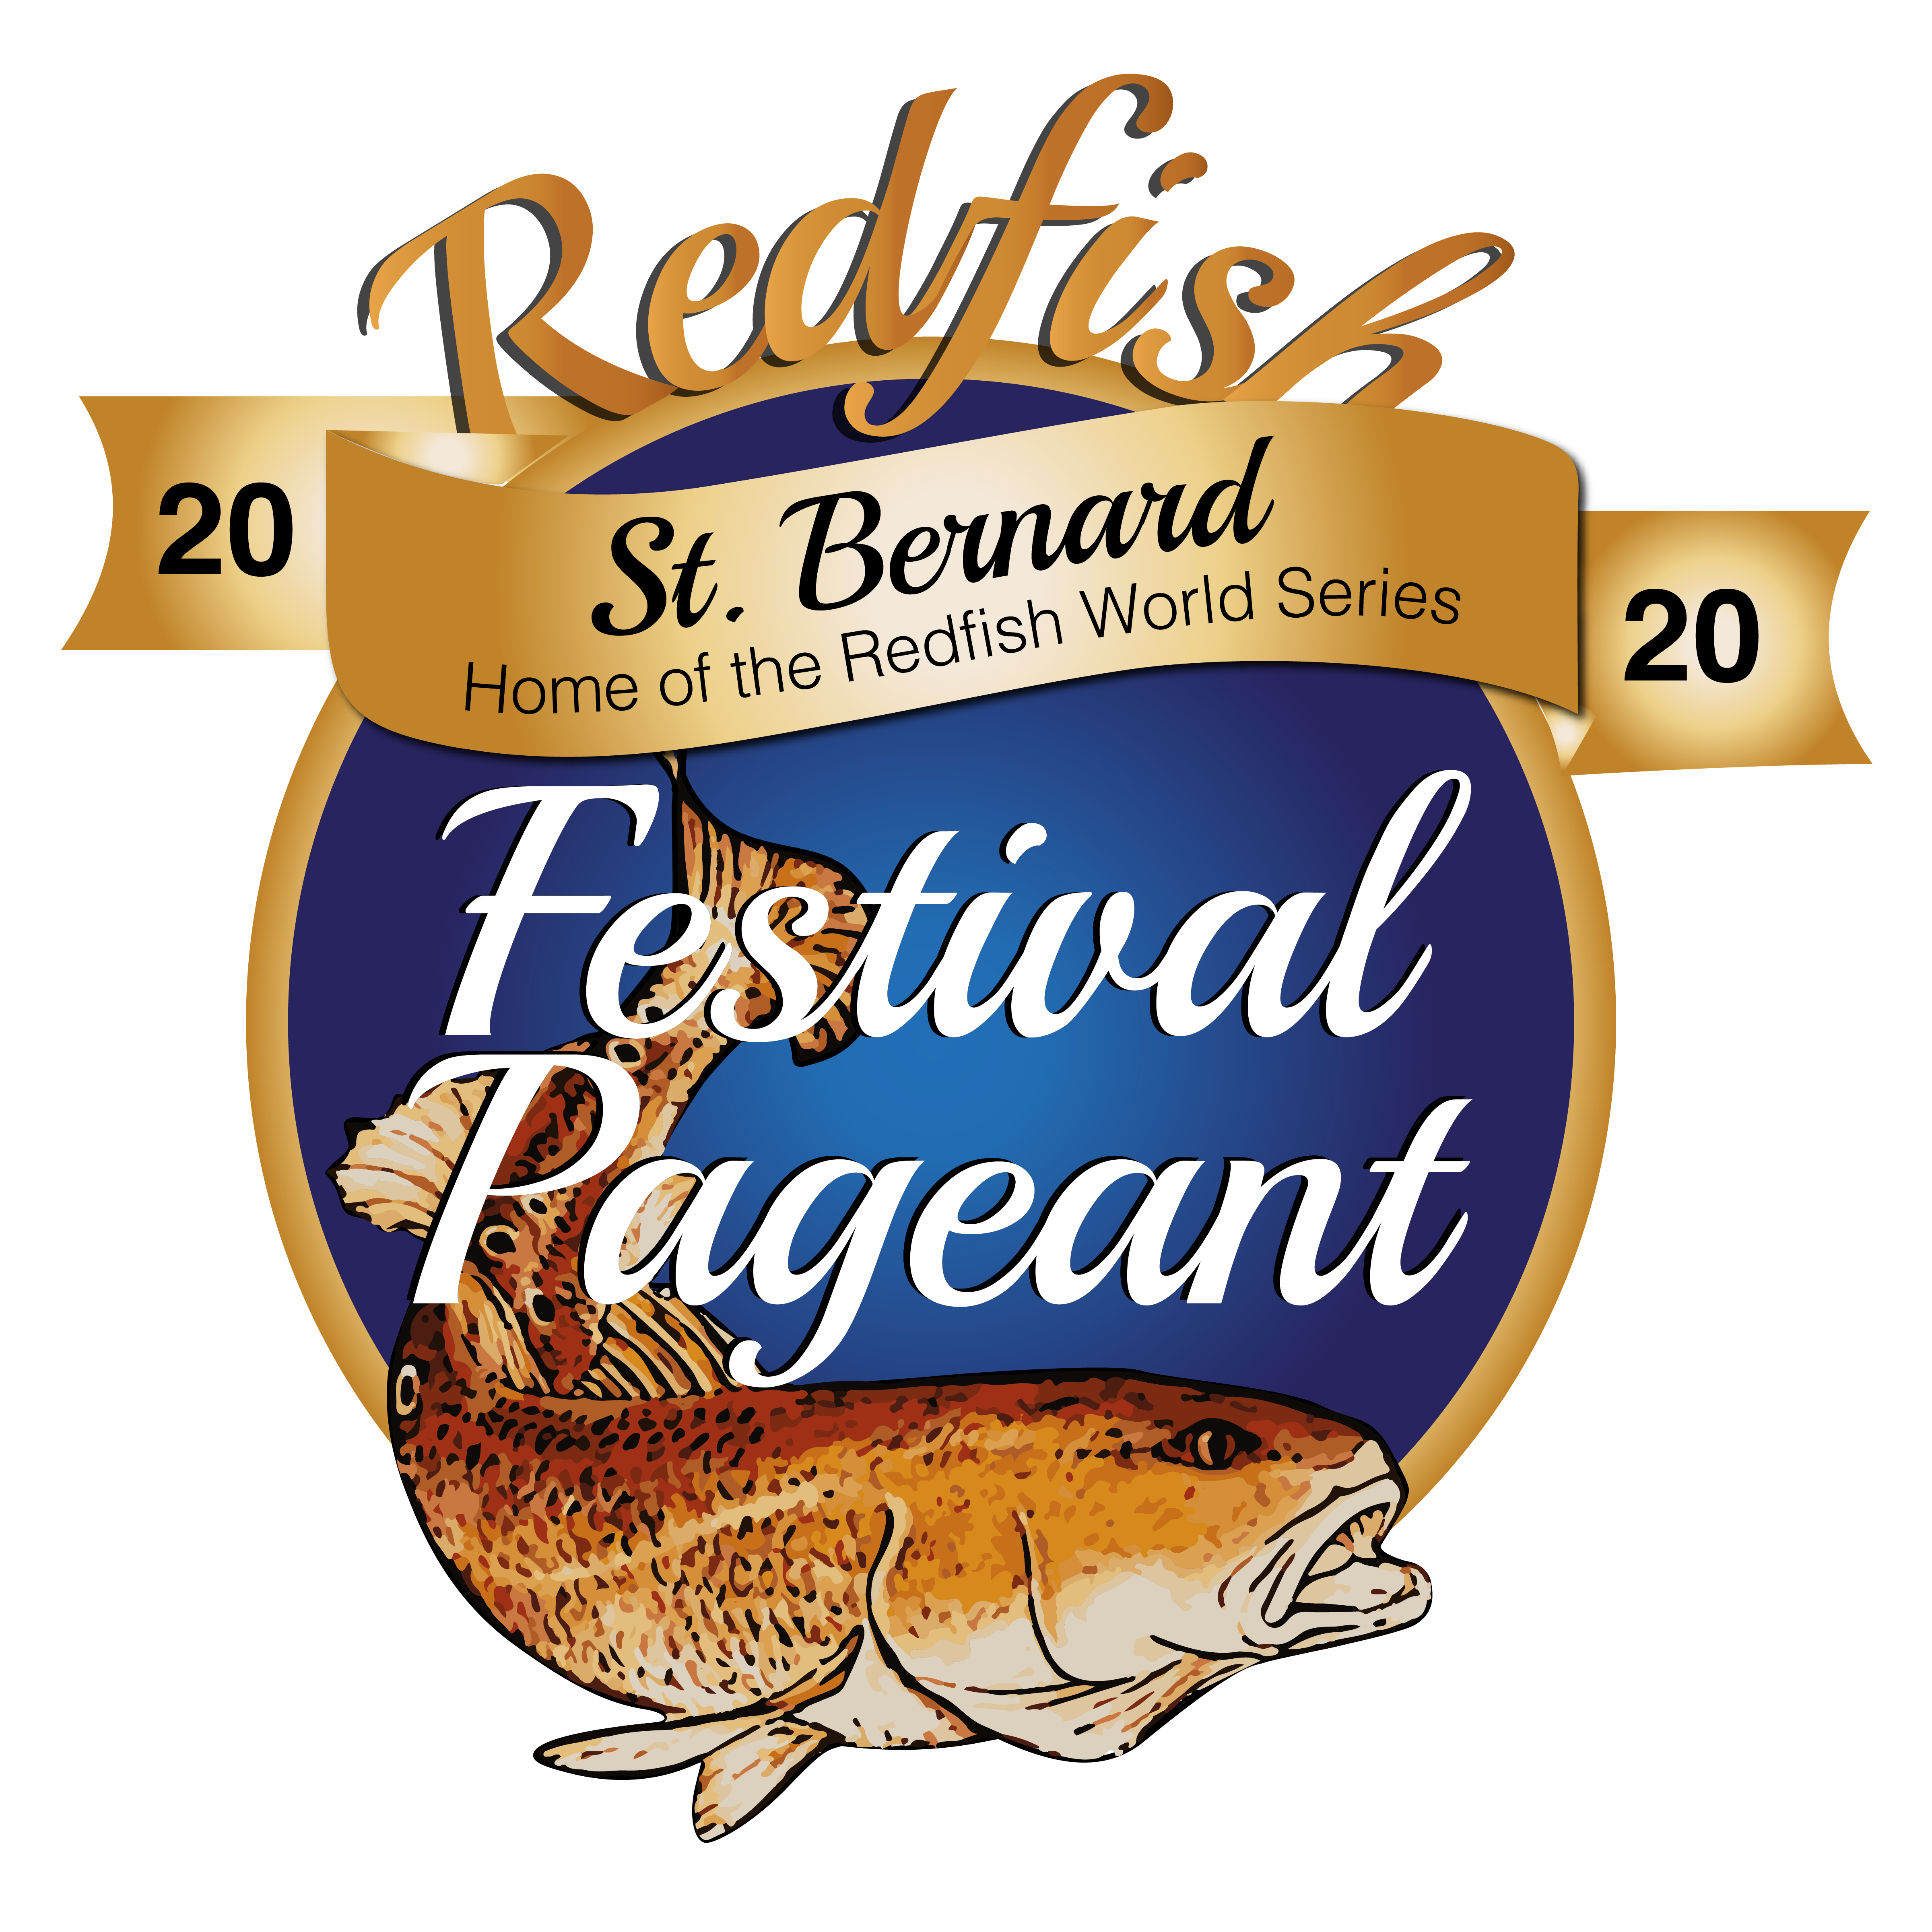 St. Bernard Parish Redfish Festival Pageant